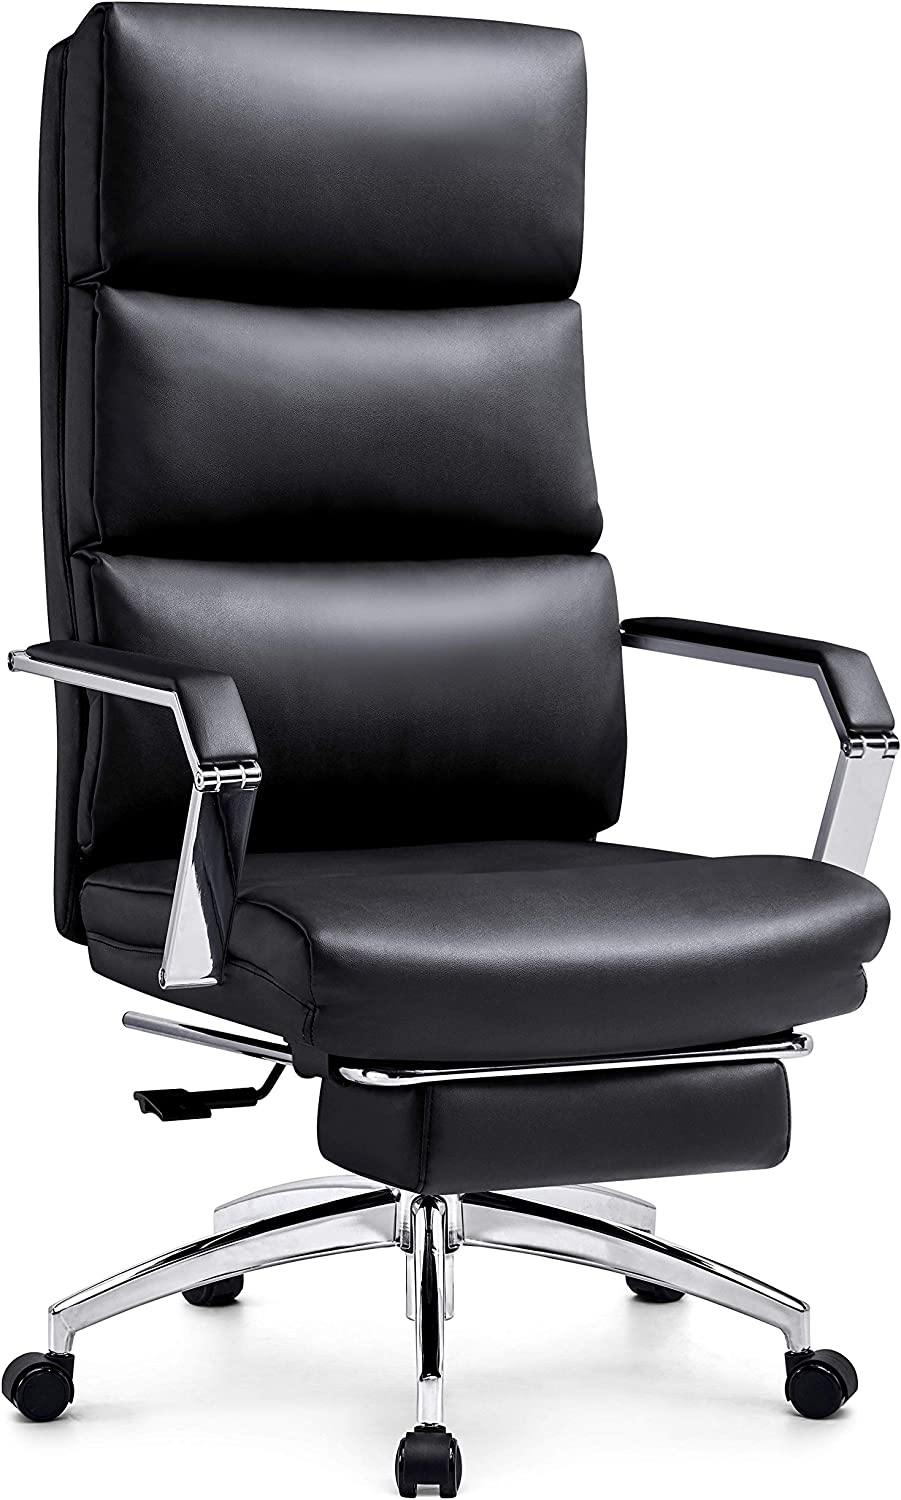 Ticova Executive Office Chair - High Back Rocking PU Leather Office Chair with Iron Armrest and Footrest - Reclining Computer Desk Chair with Ergonomic Segmented Back and Thick Padding